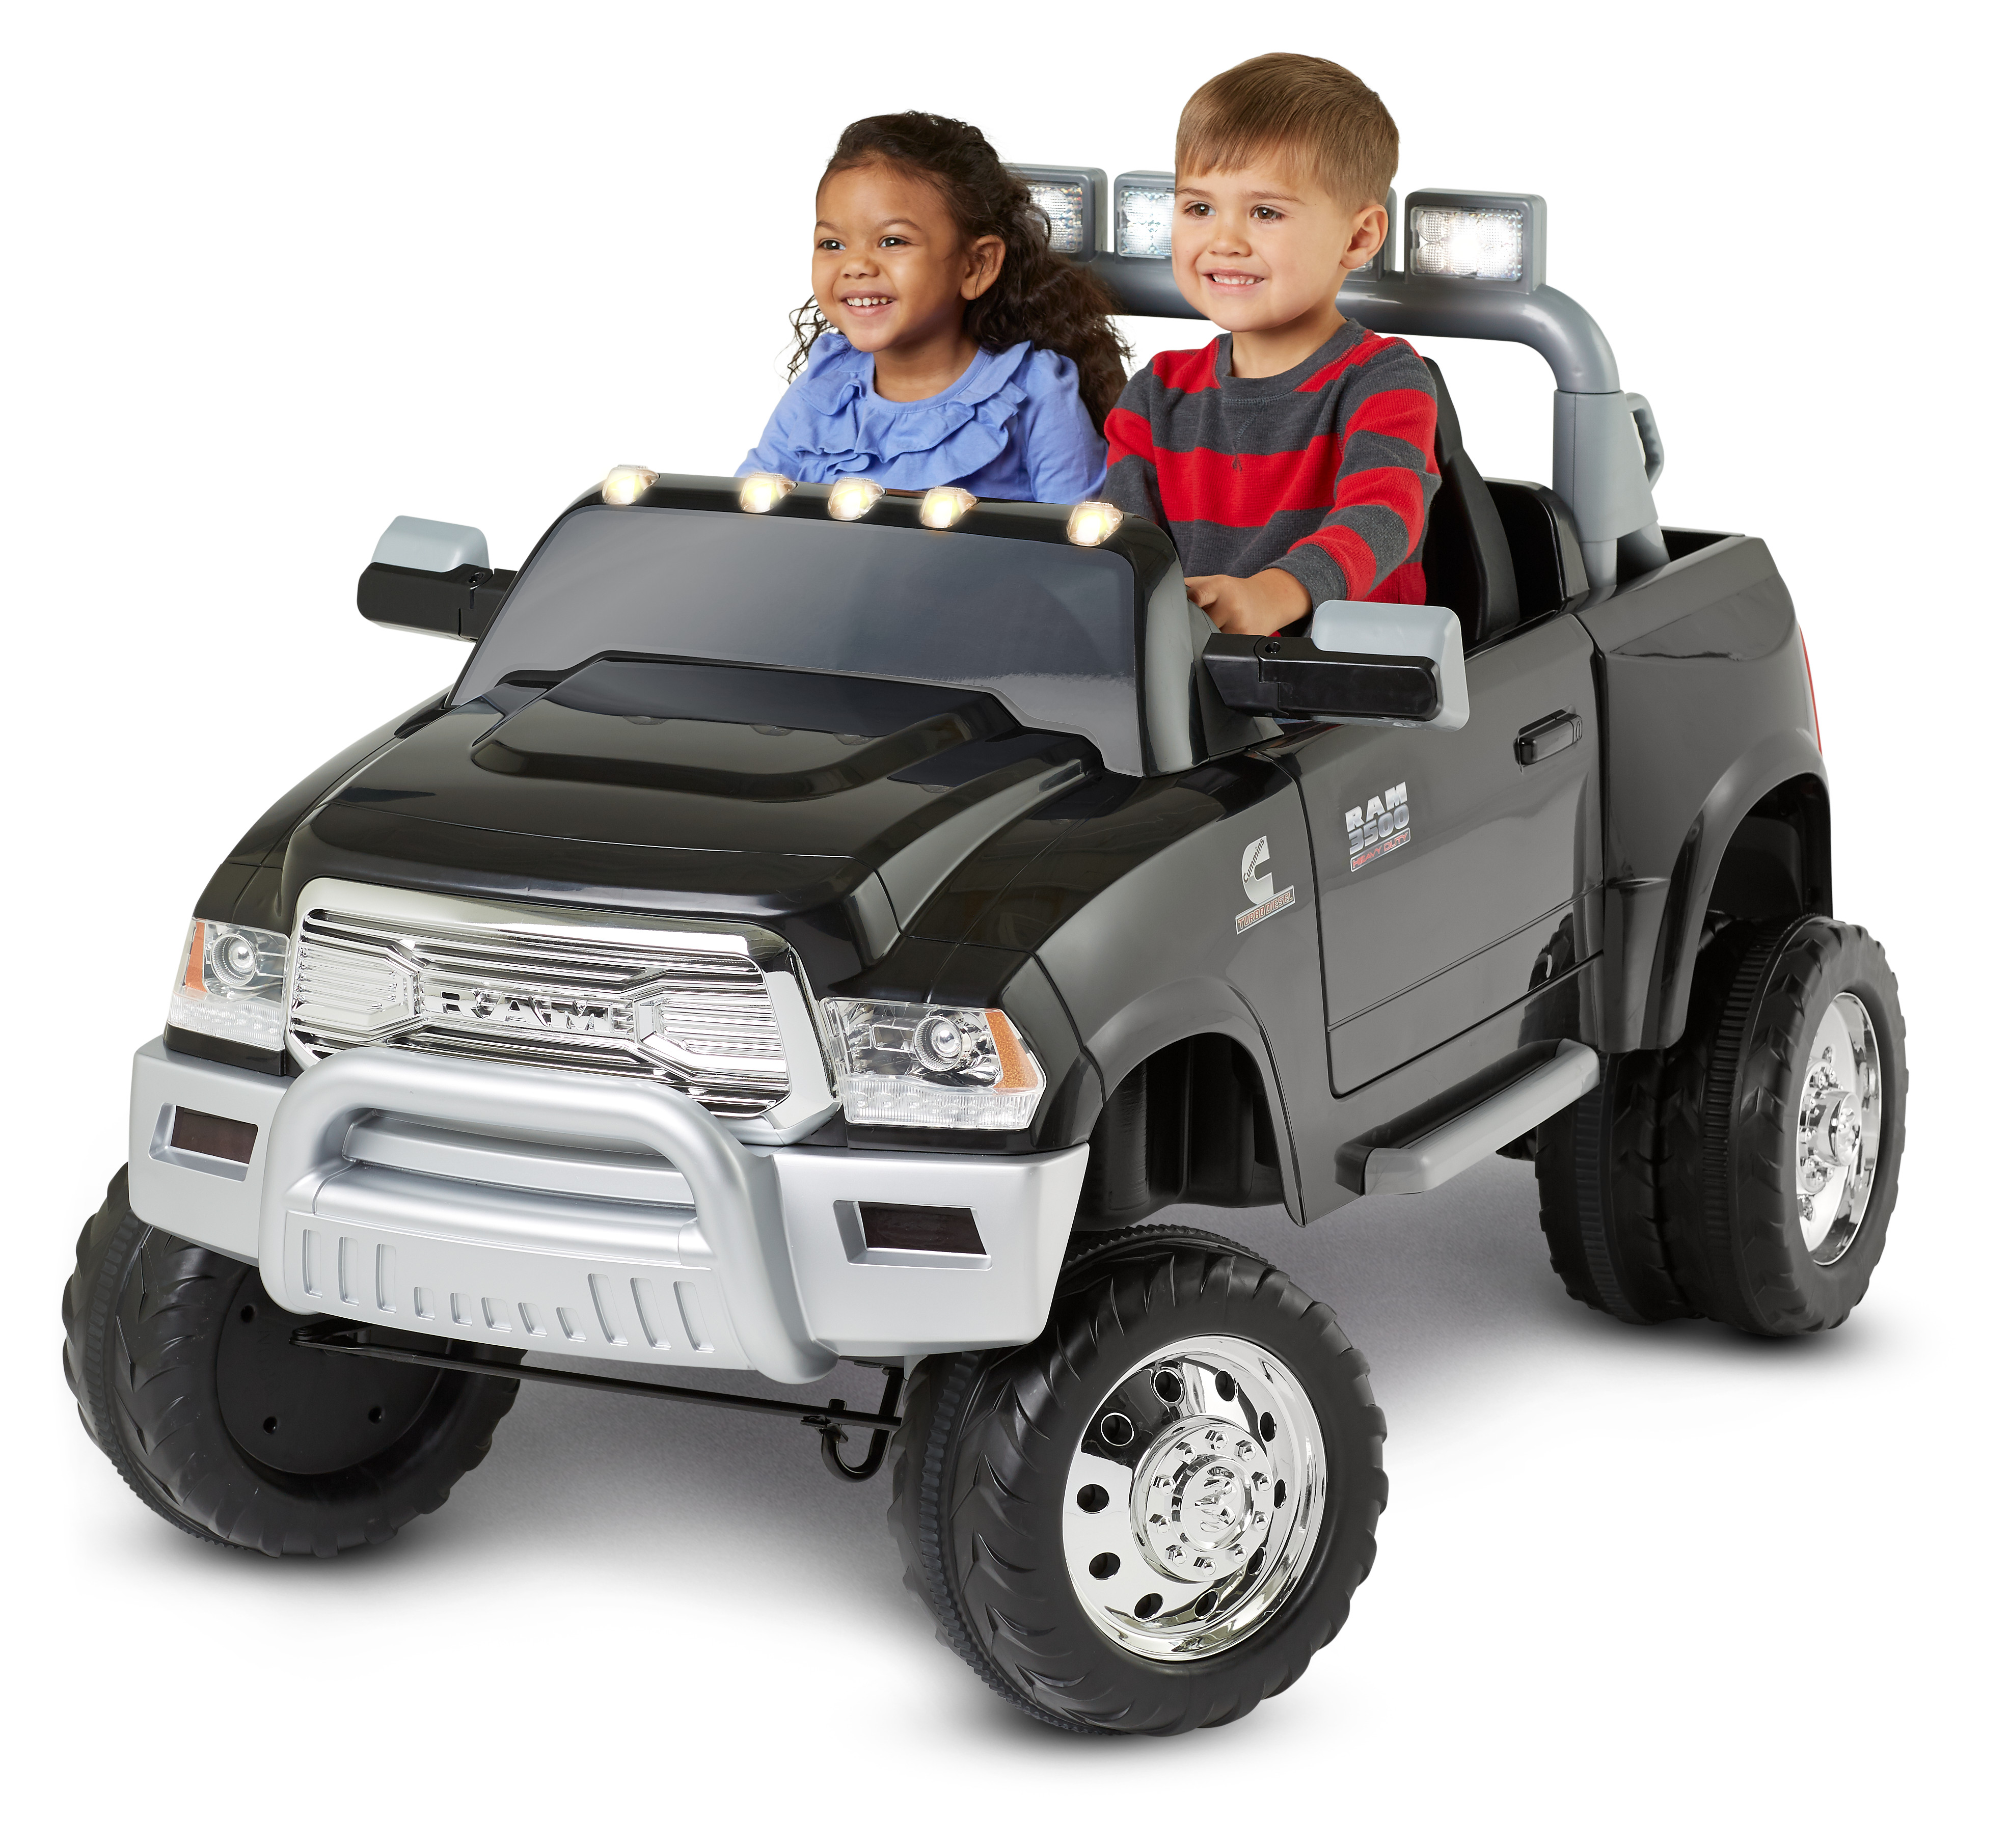 Kid Trax Ram 3500 Dually 12V Battery Powered Ride-On, Black by Pacific Cycle